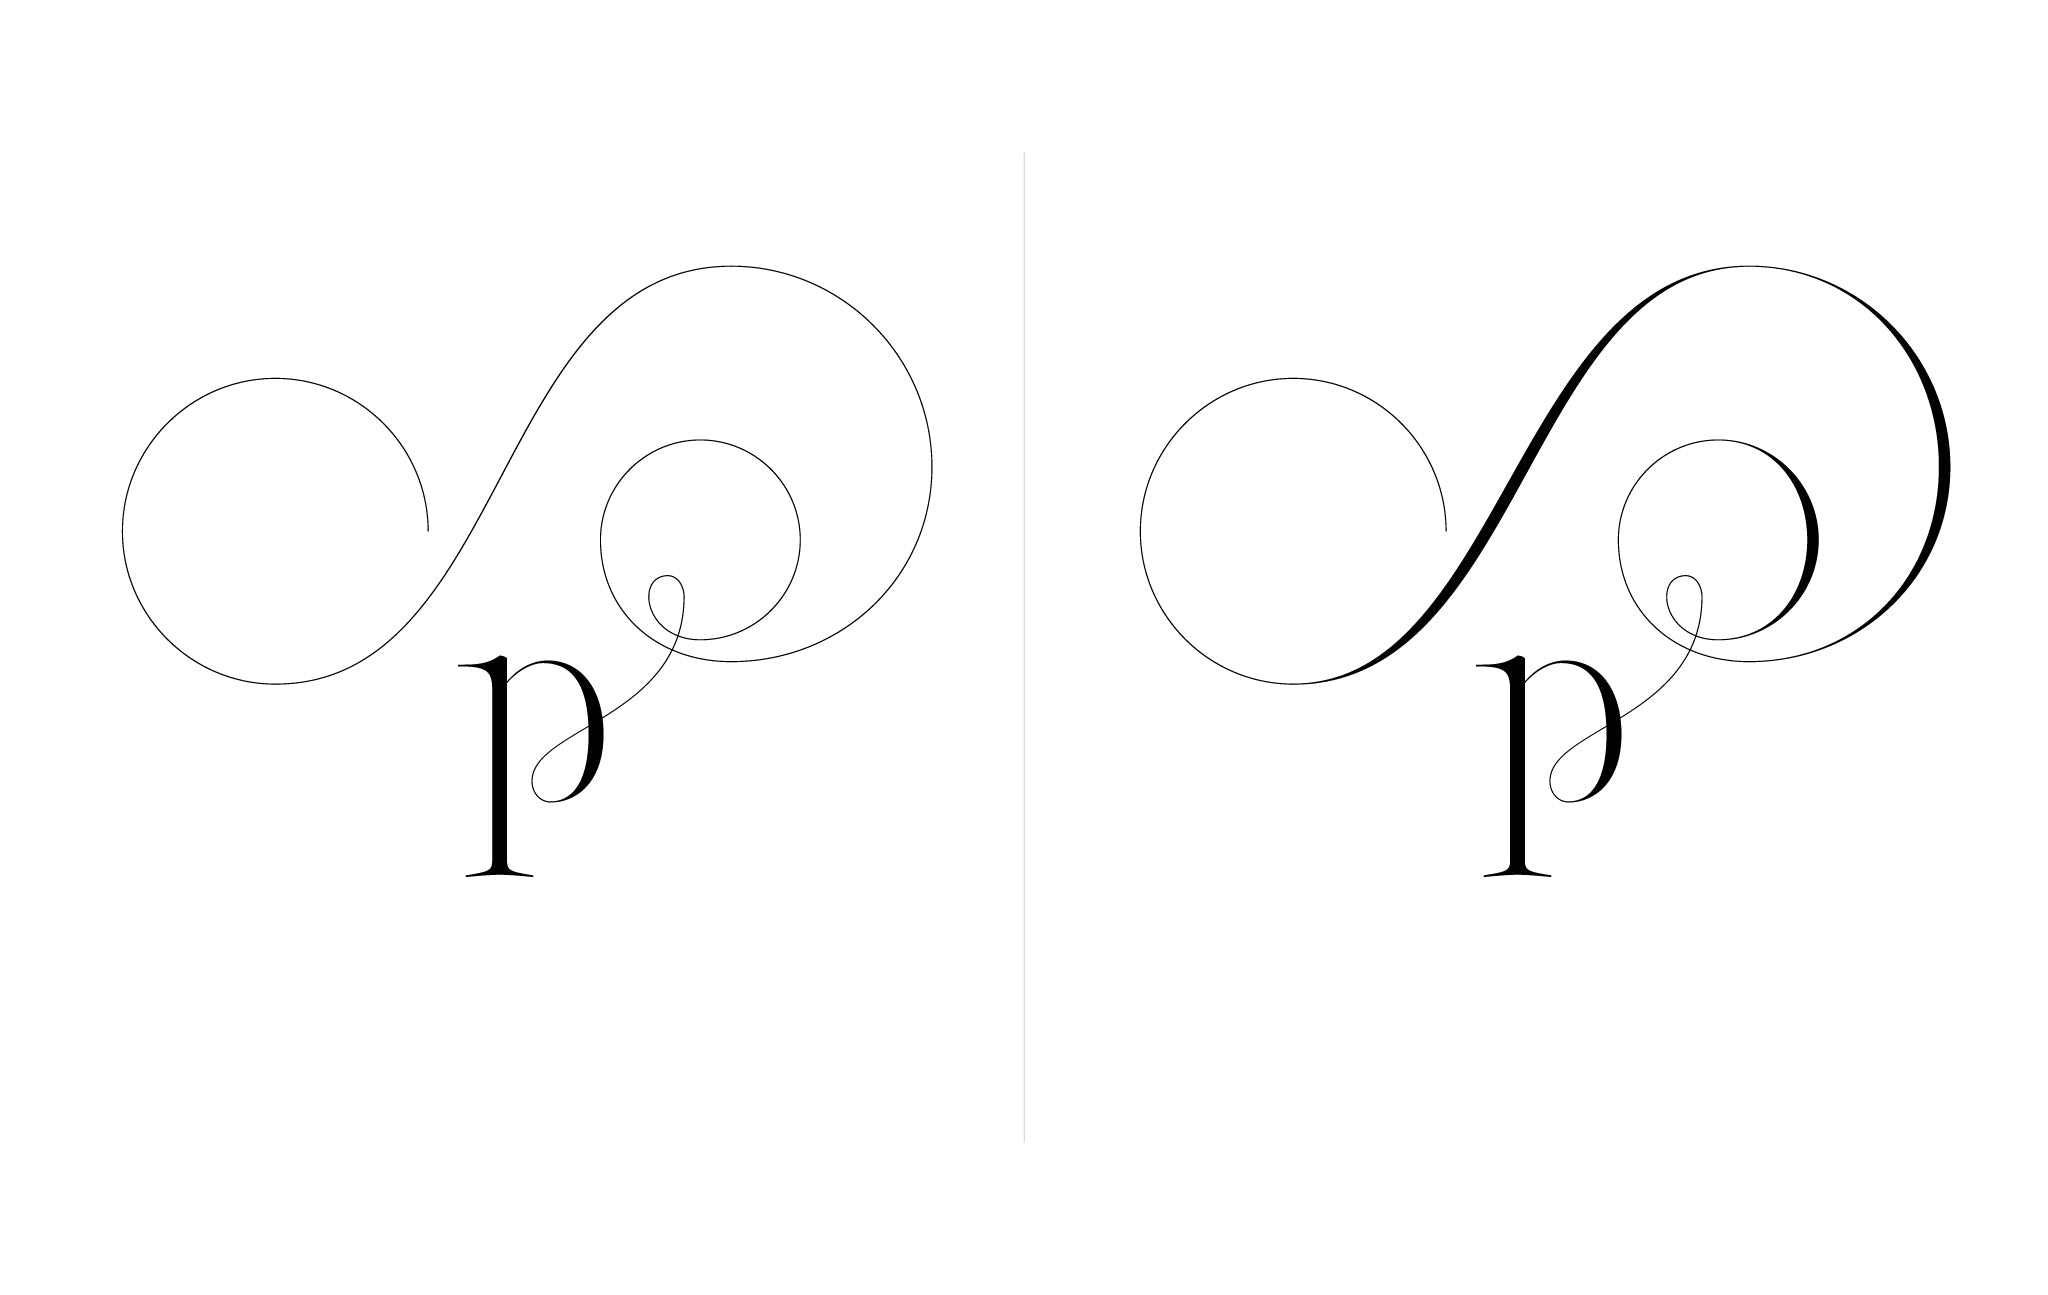 Lingerie XO Sexy Ligatures by Moshik Nadav Typography - p